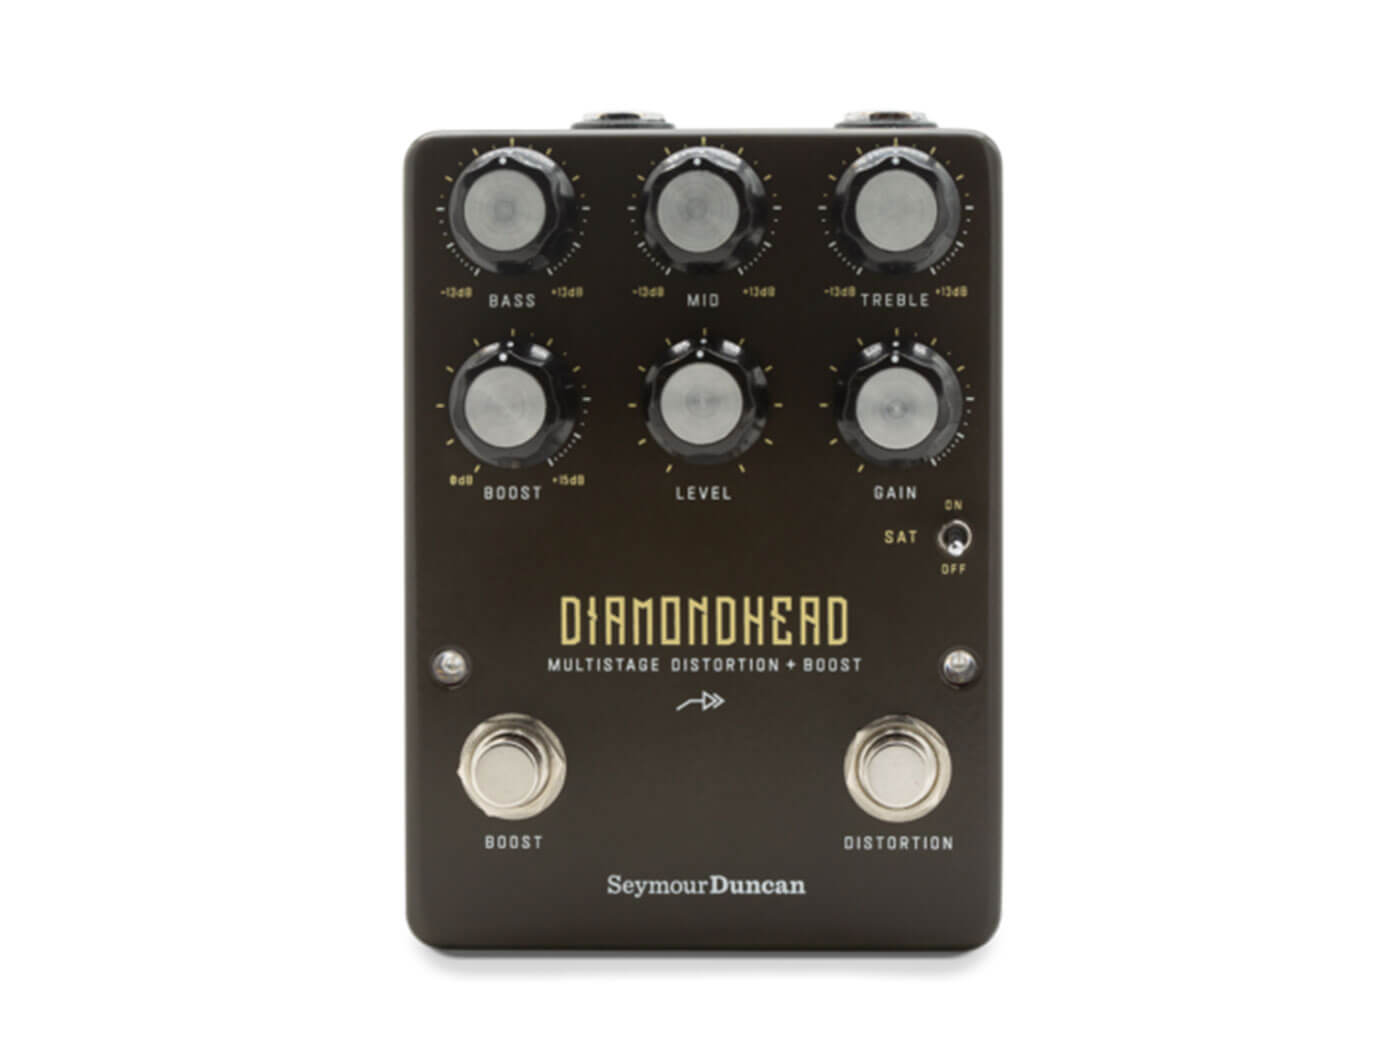 Seymour Duncan launches the Diamondhead, a multistage distortion pedal - Guitar.com